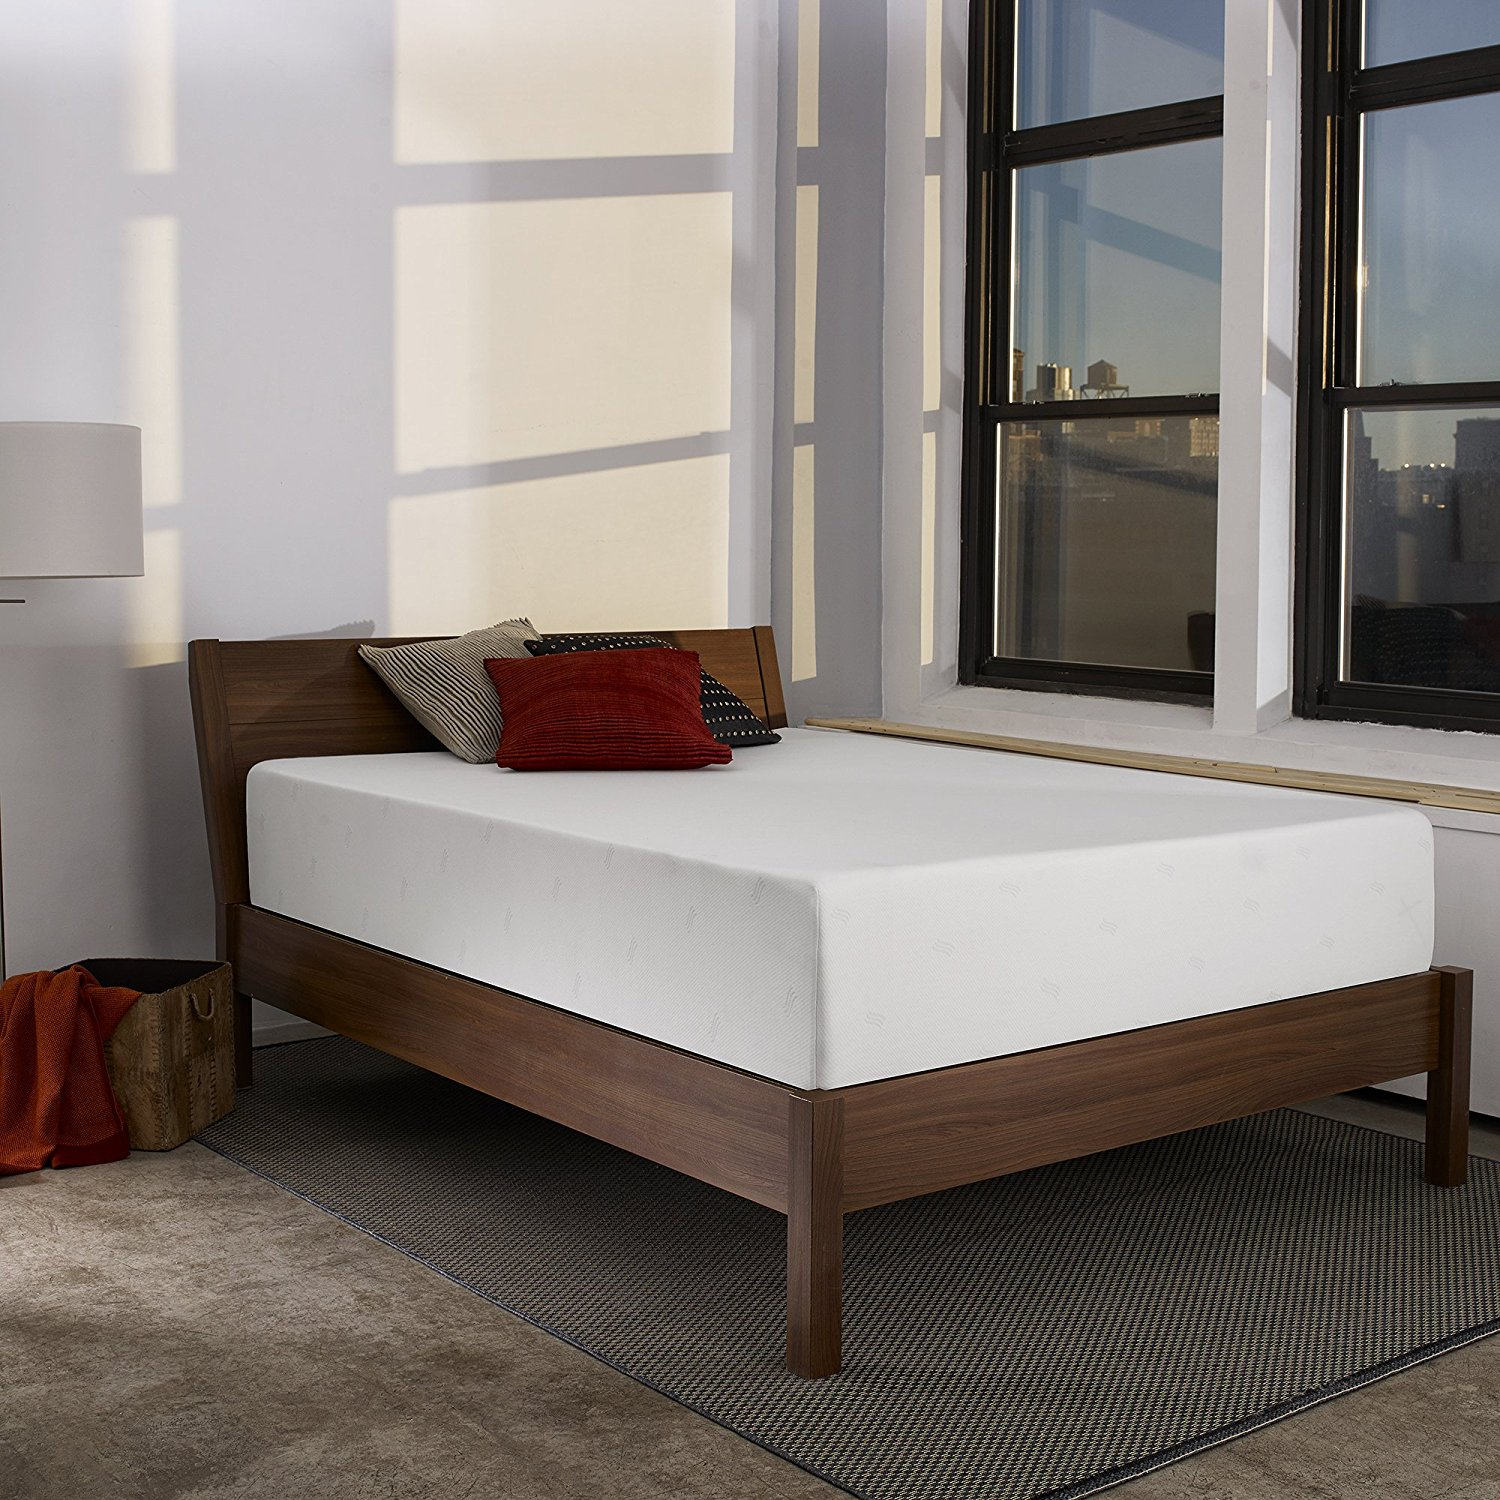 King Size Memory Foam Mattress Design